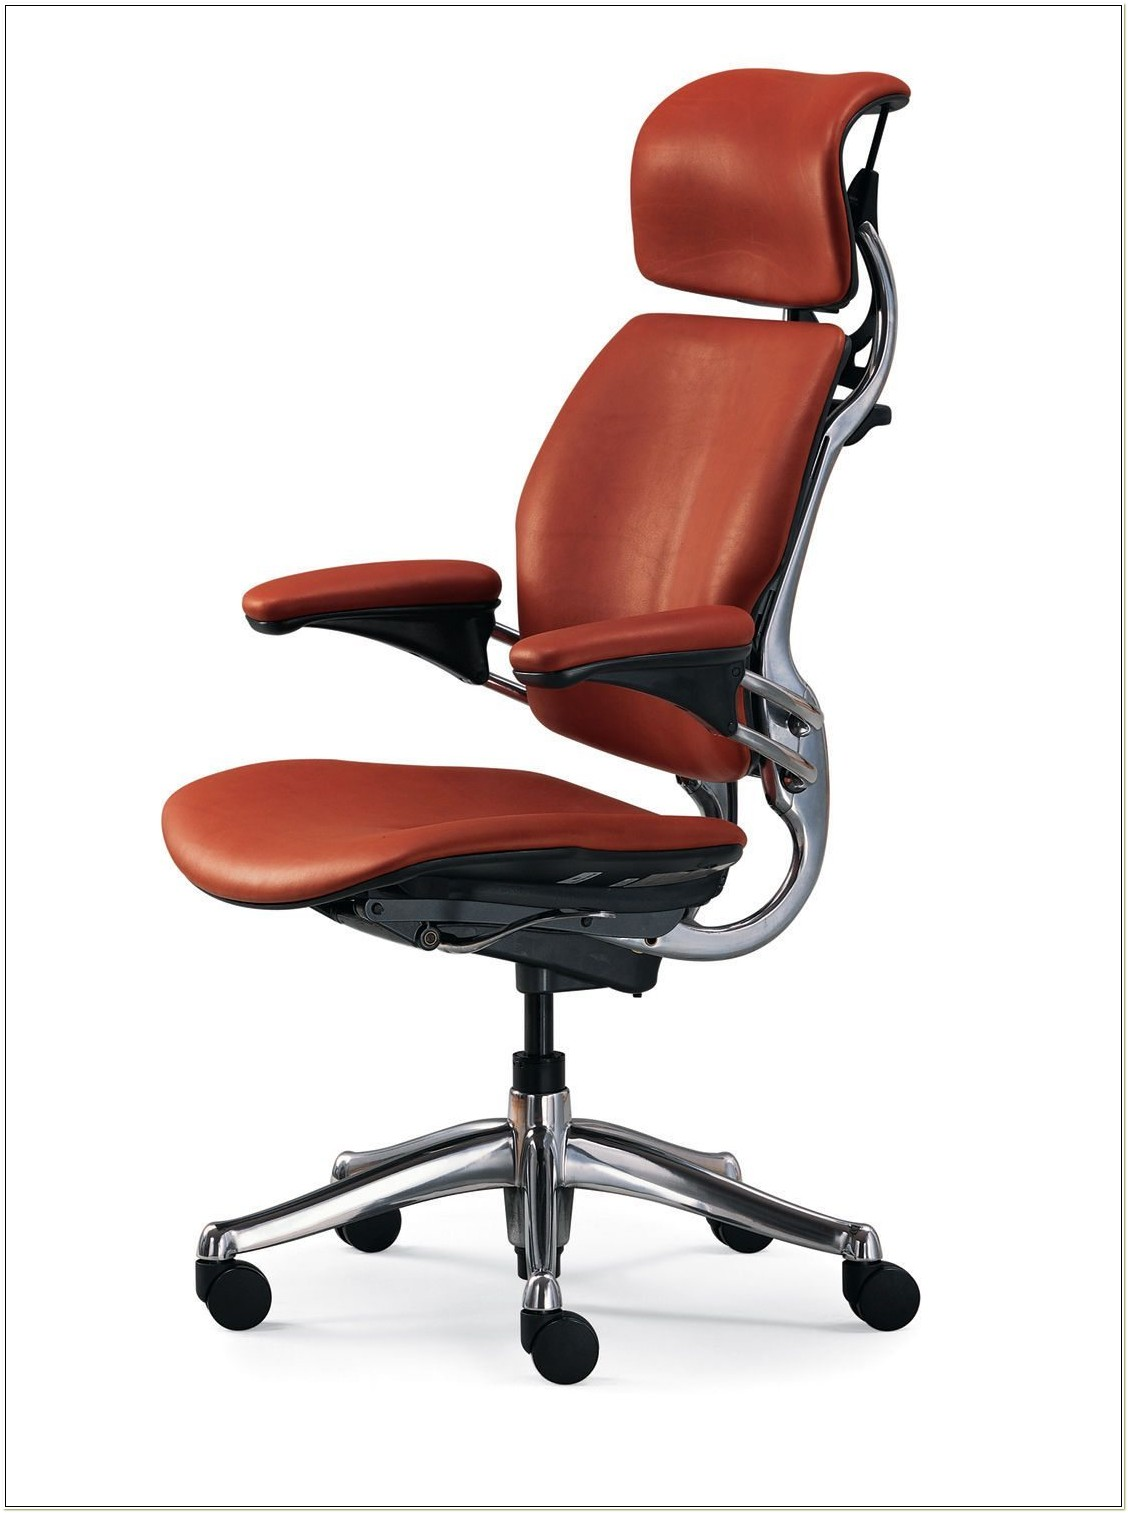 Best Rated Office Chairs For Comfort